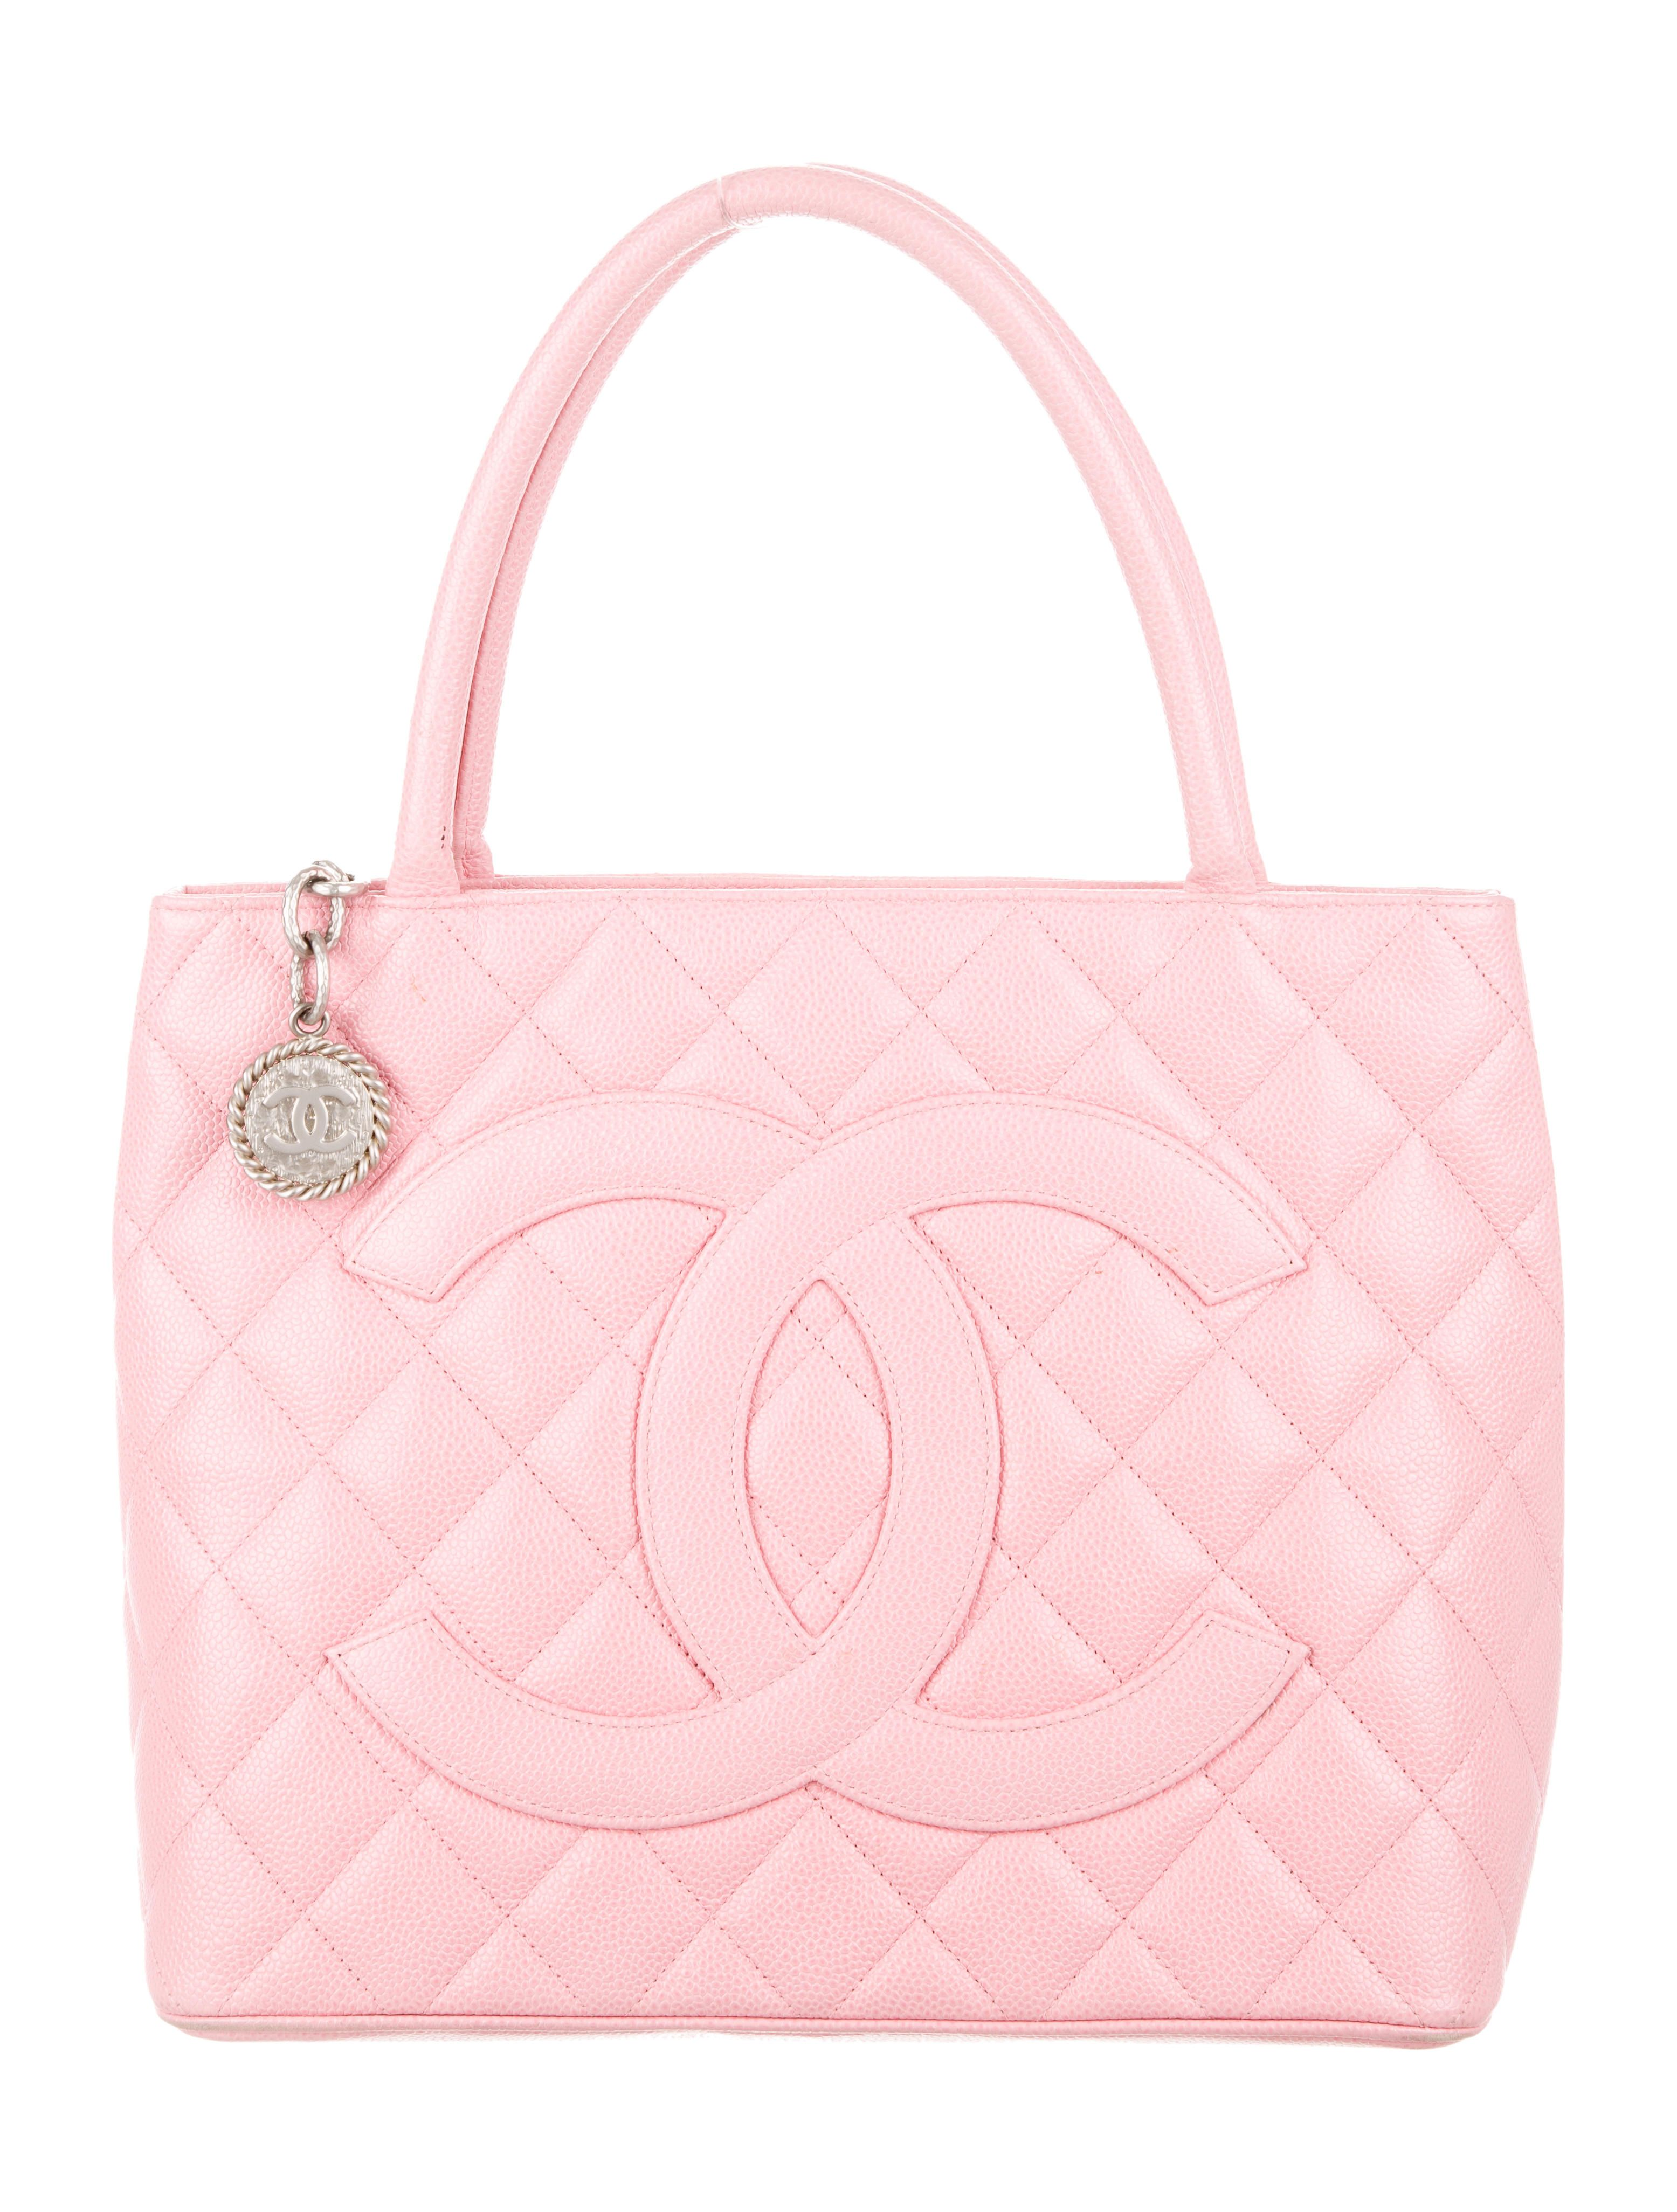 cbfa68223fed Pink quilted Caviar leather Chanel Medallion tote with silver-tone  hardware, dual rolled top